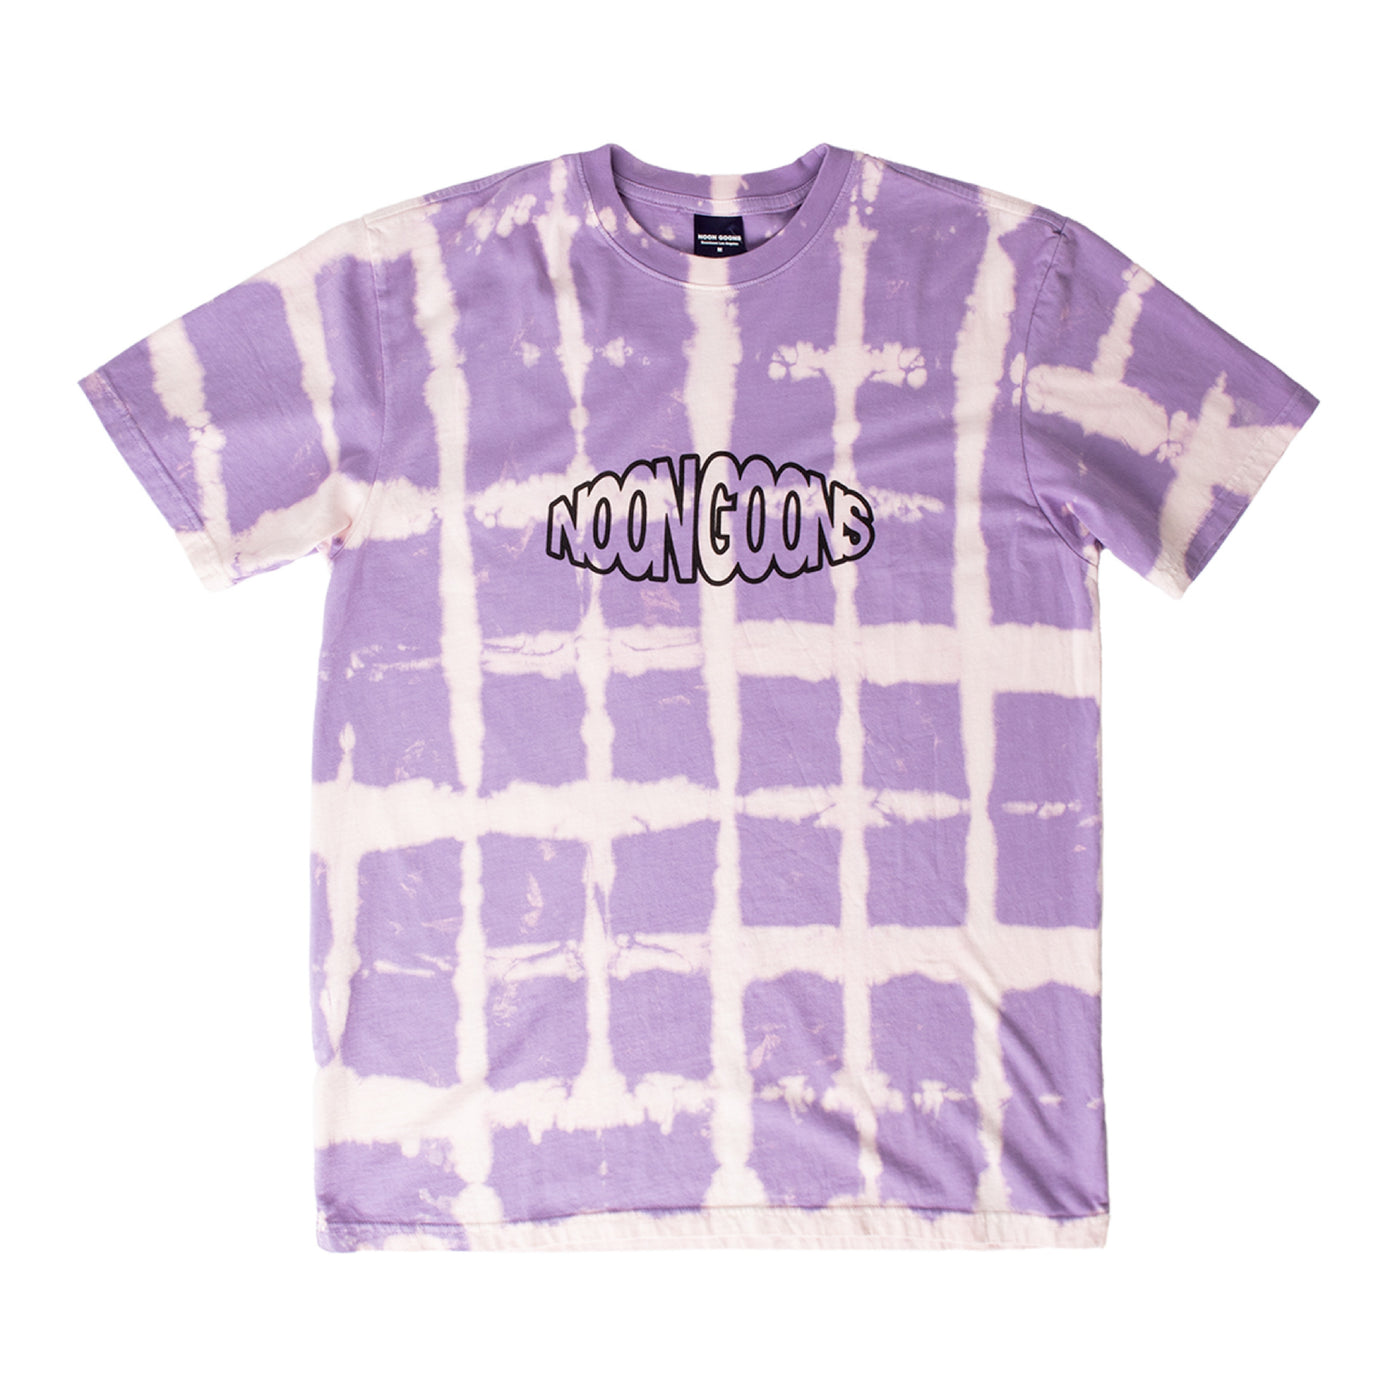 Load image into Gallery viewer, NOON GOONS TIE-DYE T-SHIRT PURPLE